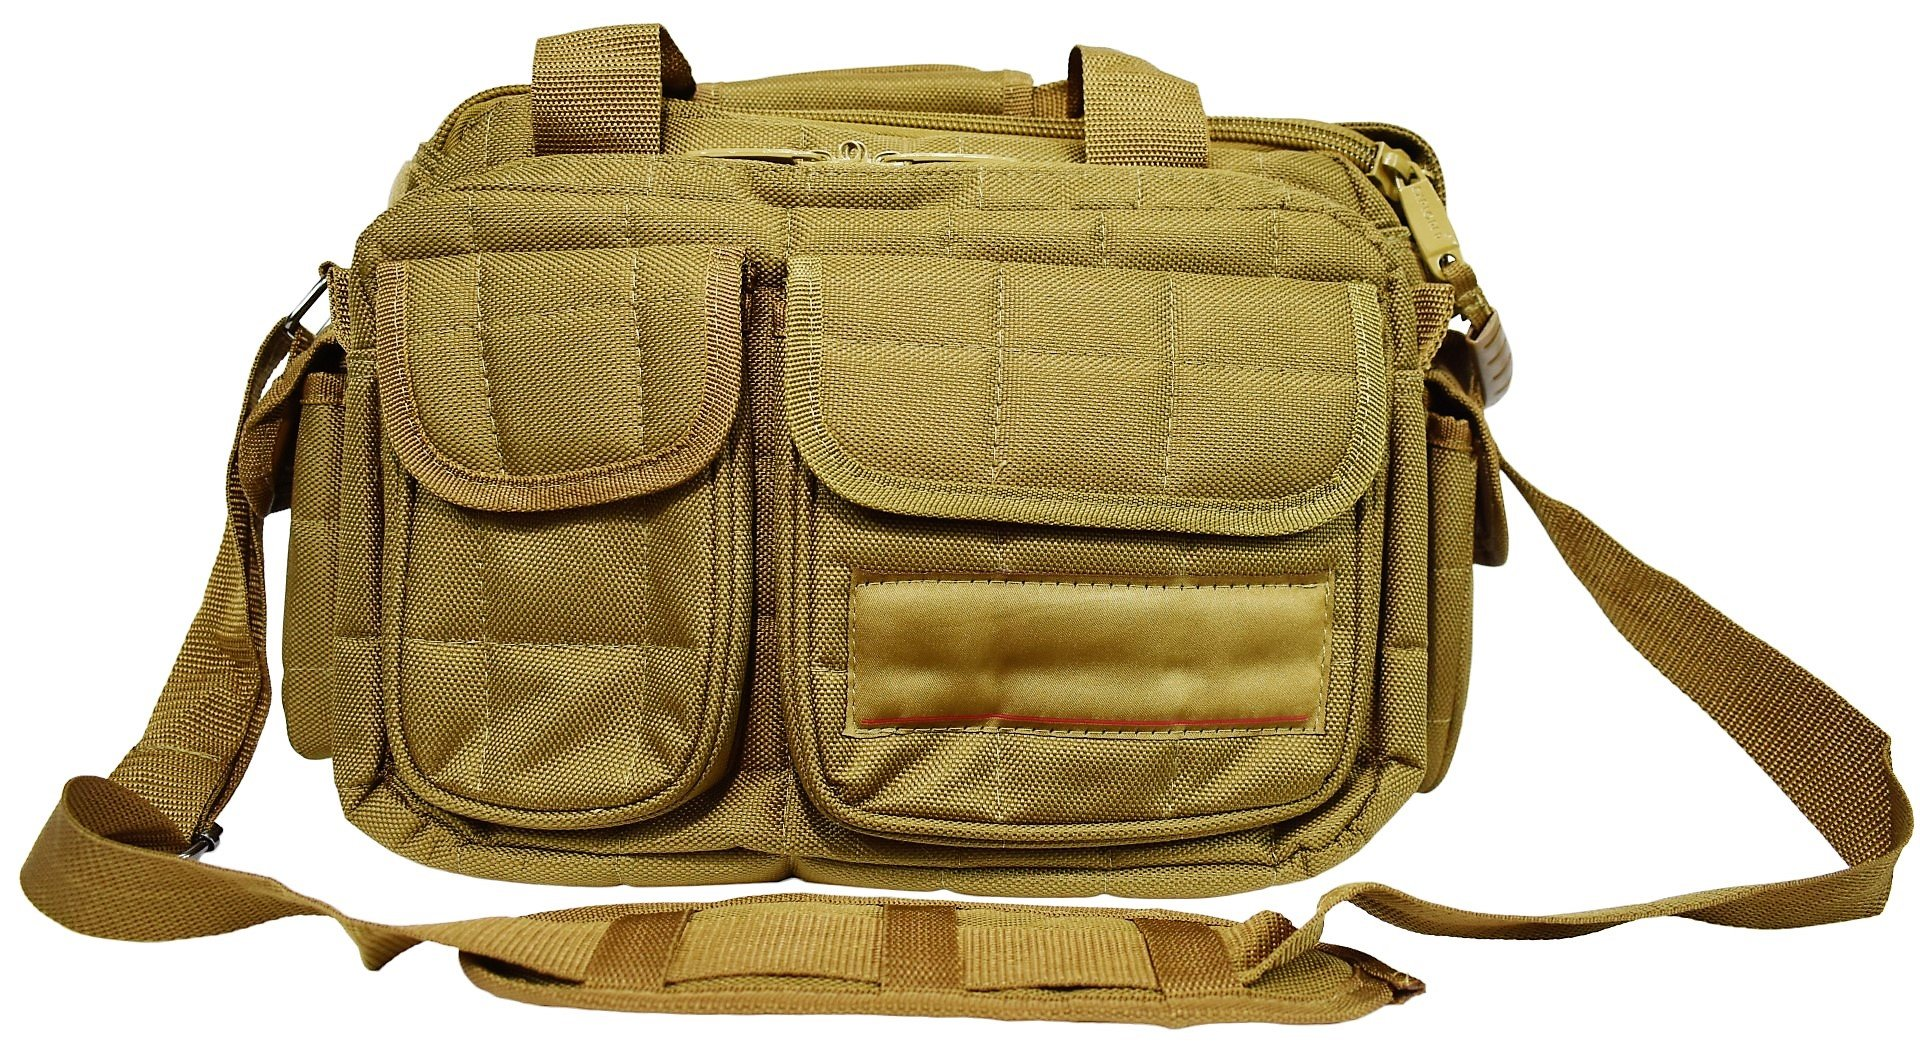 EXPLORER Range Bags Handguns Tactical Gear Shooting Accessories Large 1200 D Gun Bag Waterproof AR Magazine Holders Padded Pistol Cases Ammo Bag (Tan Range Bag) by Explorer